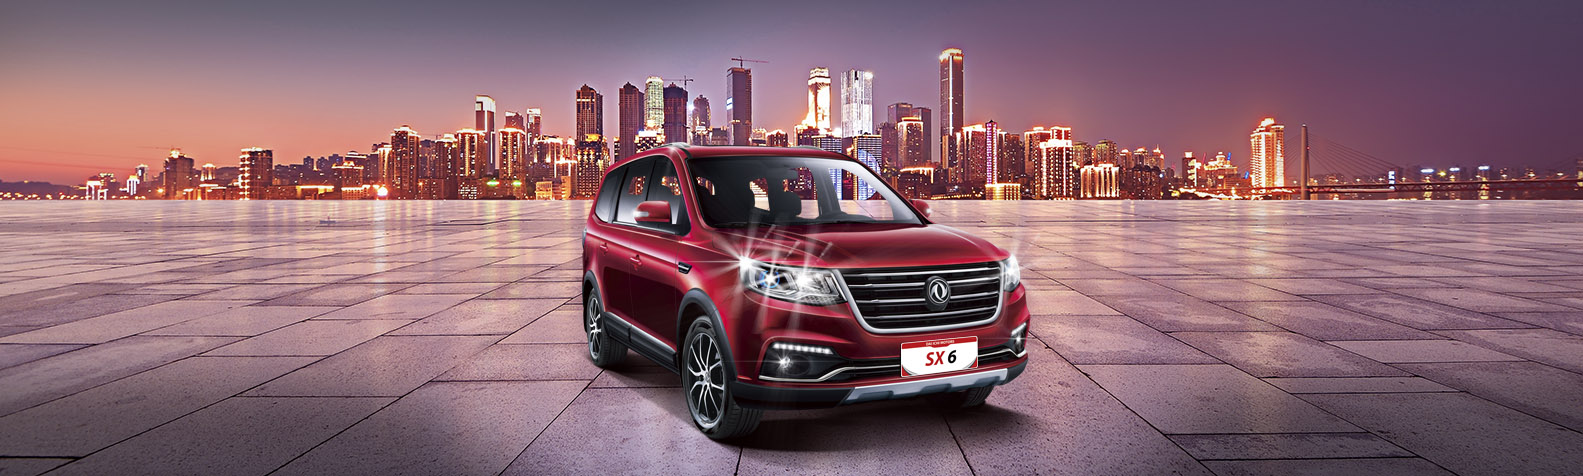 DONGFENG_SX6_